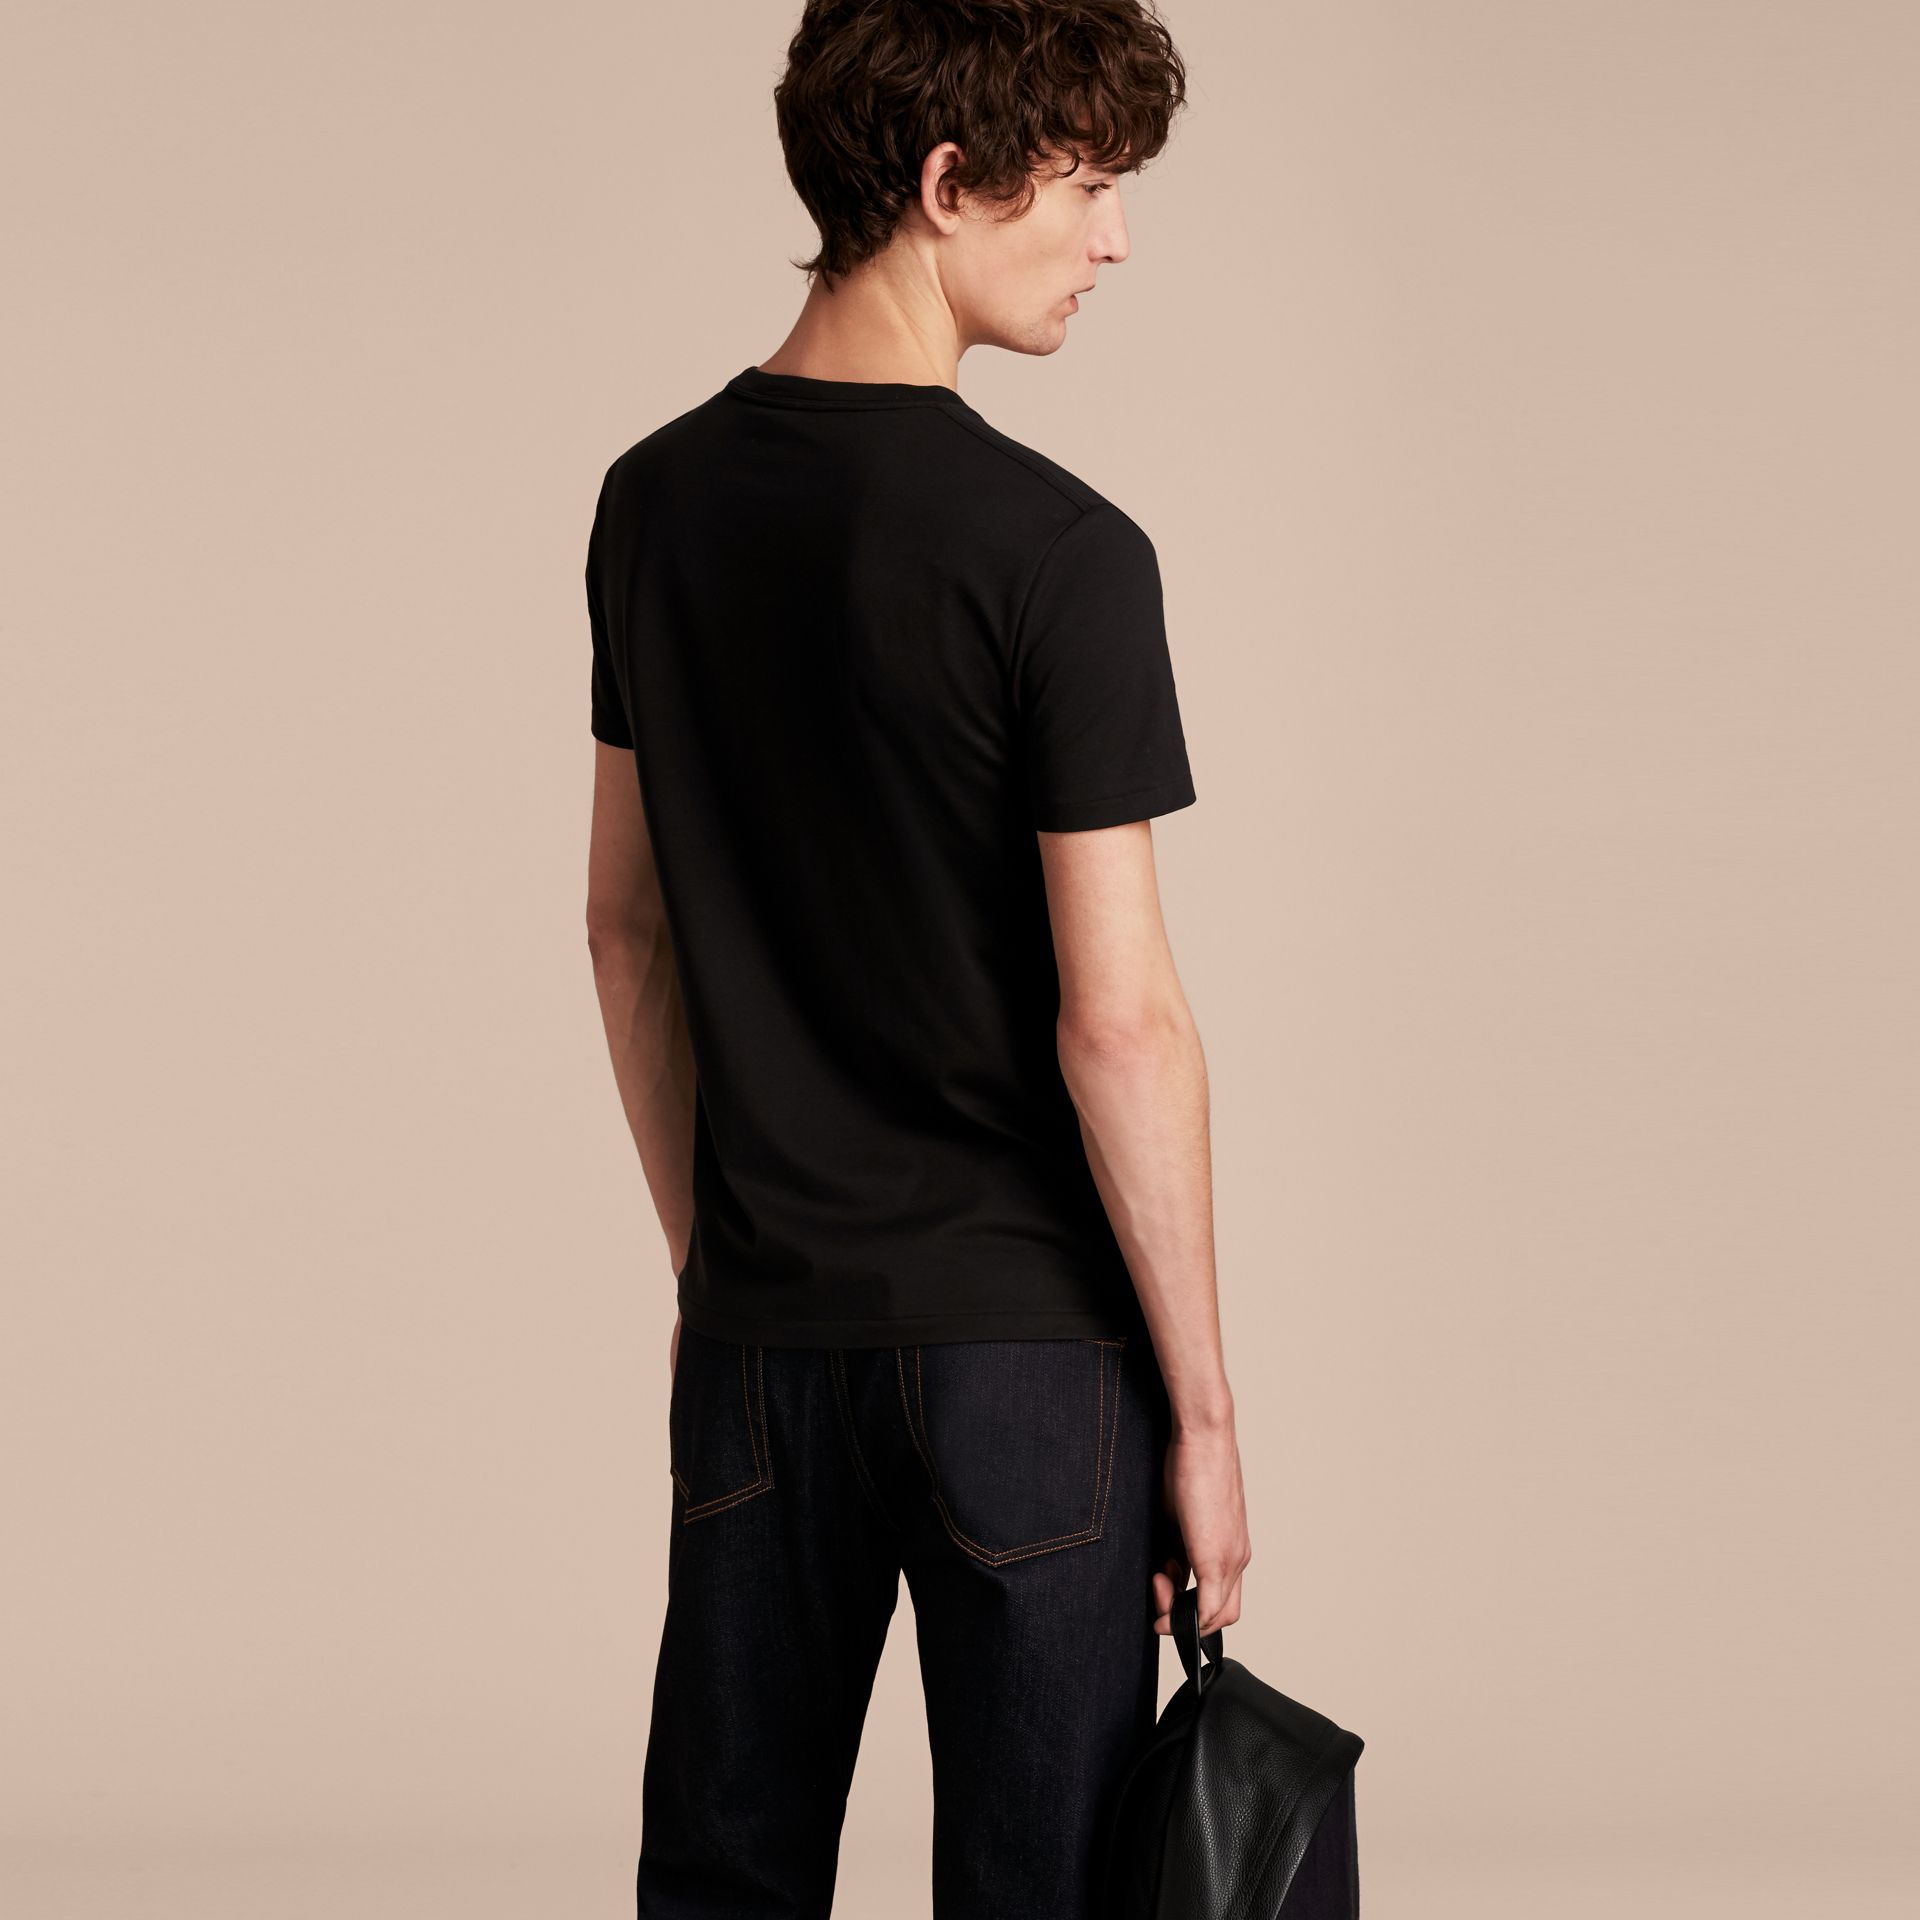 Cotton V-neck T-shirt in Black - Men | Burberry - gallery image 2